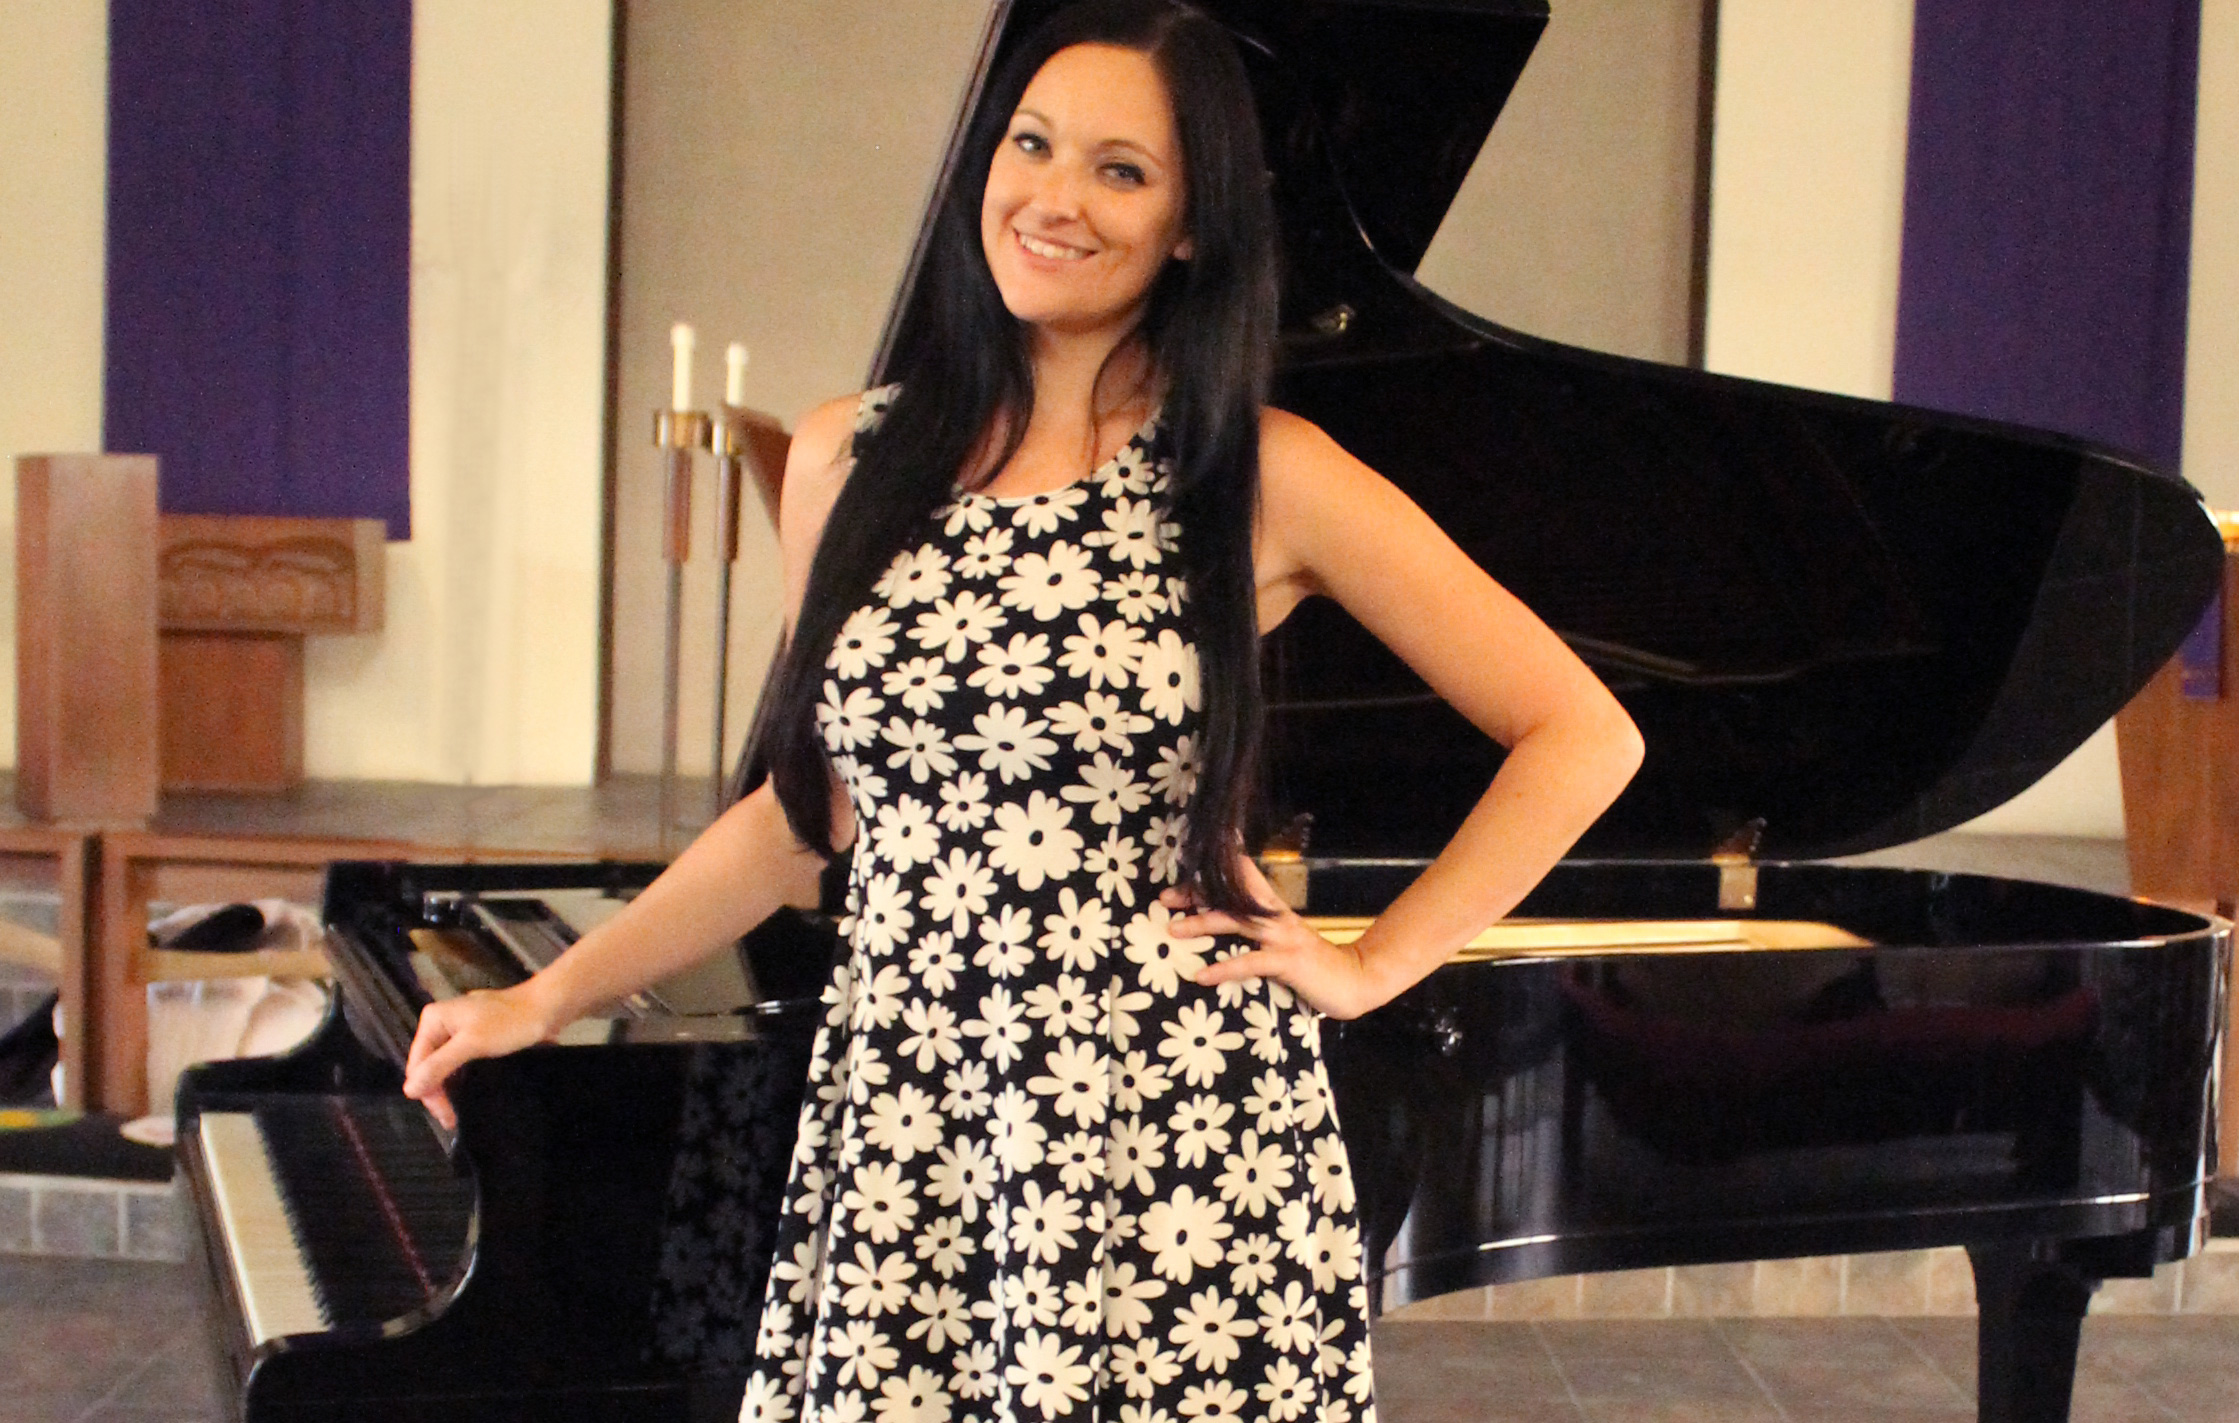 PIano teacher Christina Lopriore